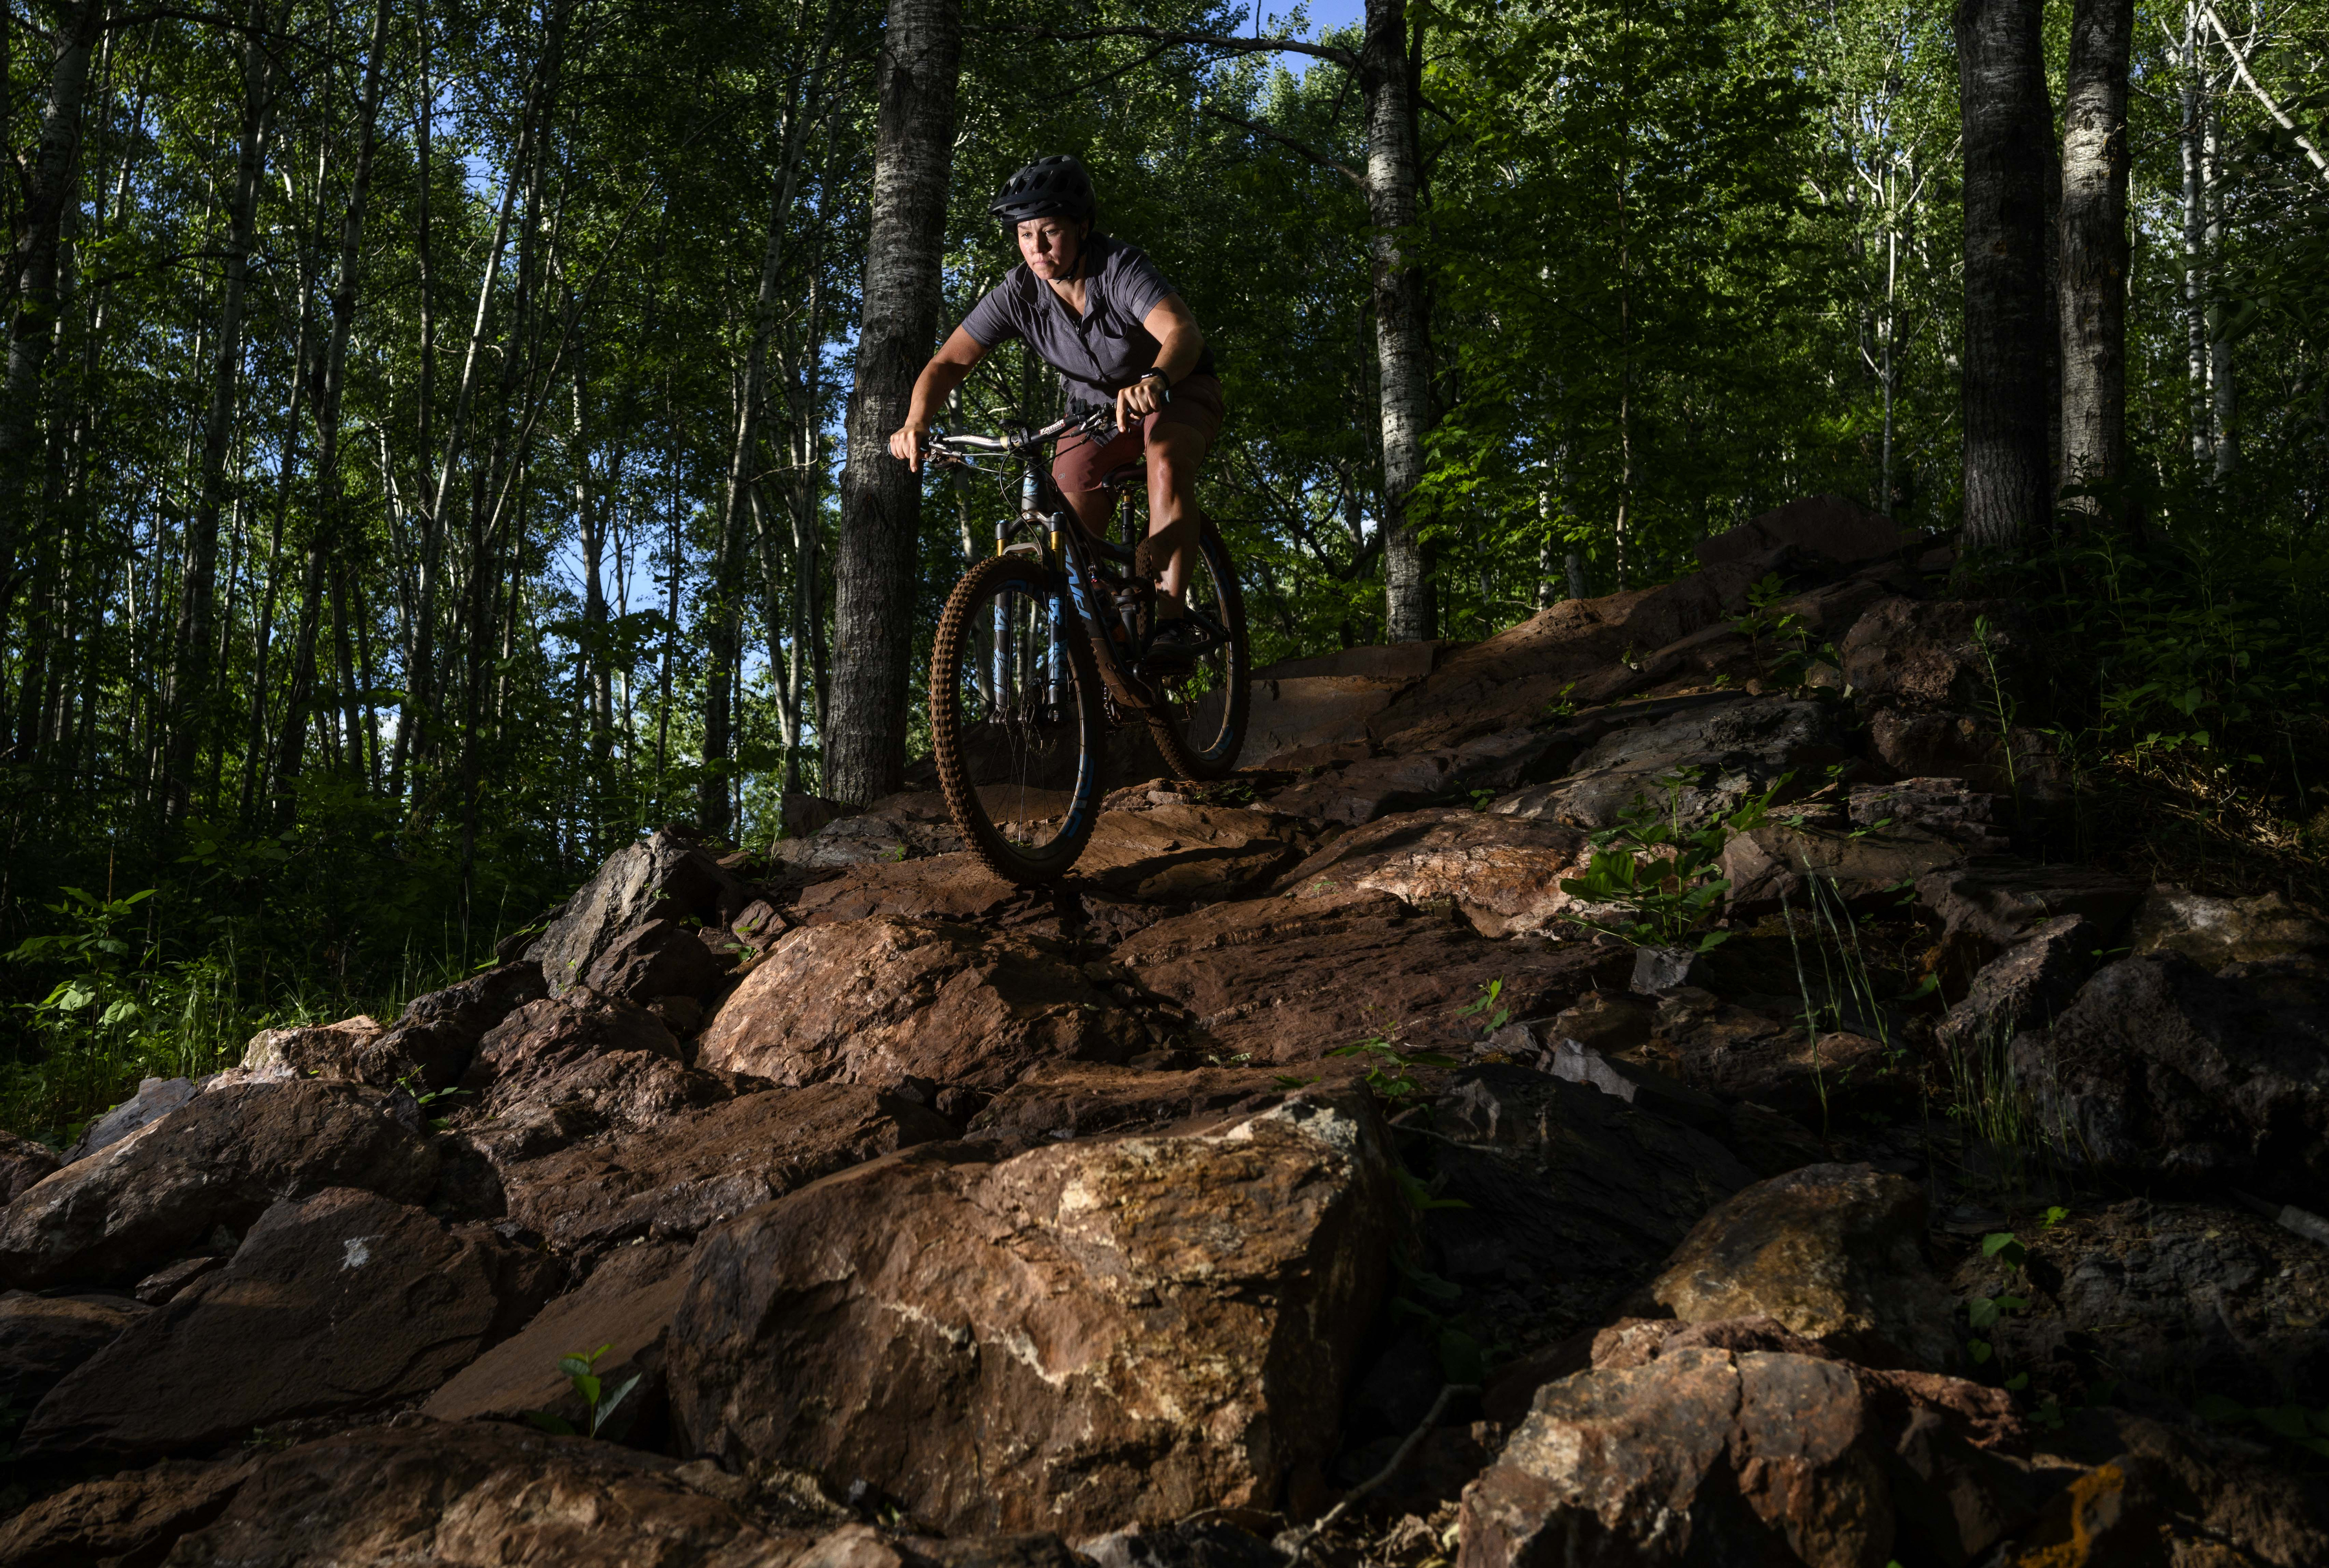 Mari Kivisto navigated a rock wall on the Drawpoint Trail as night came to the Cuyuna Country State Recreation Area.